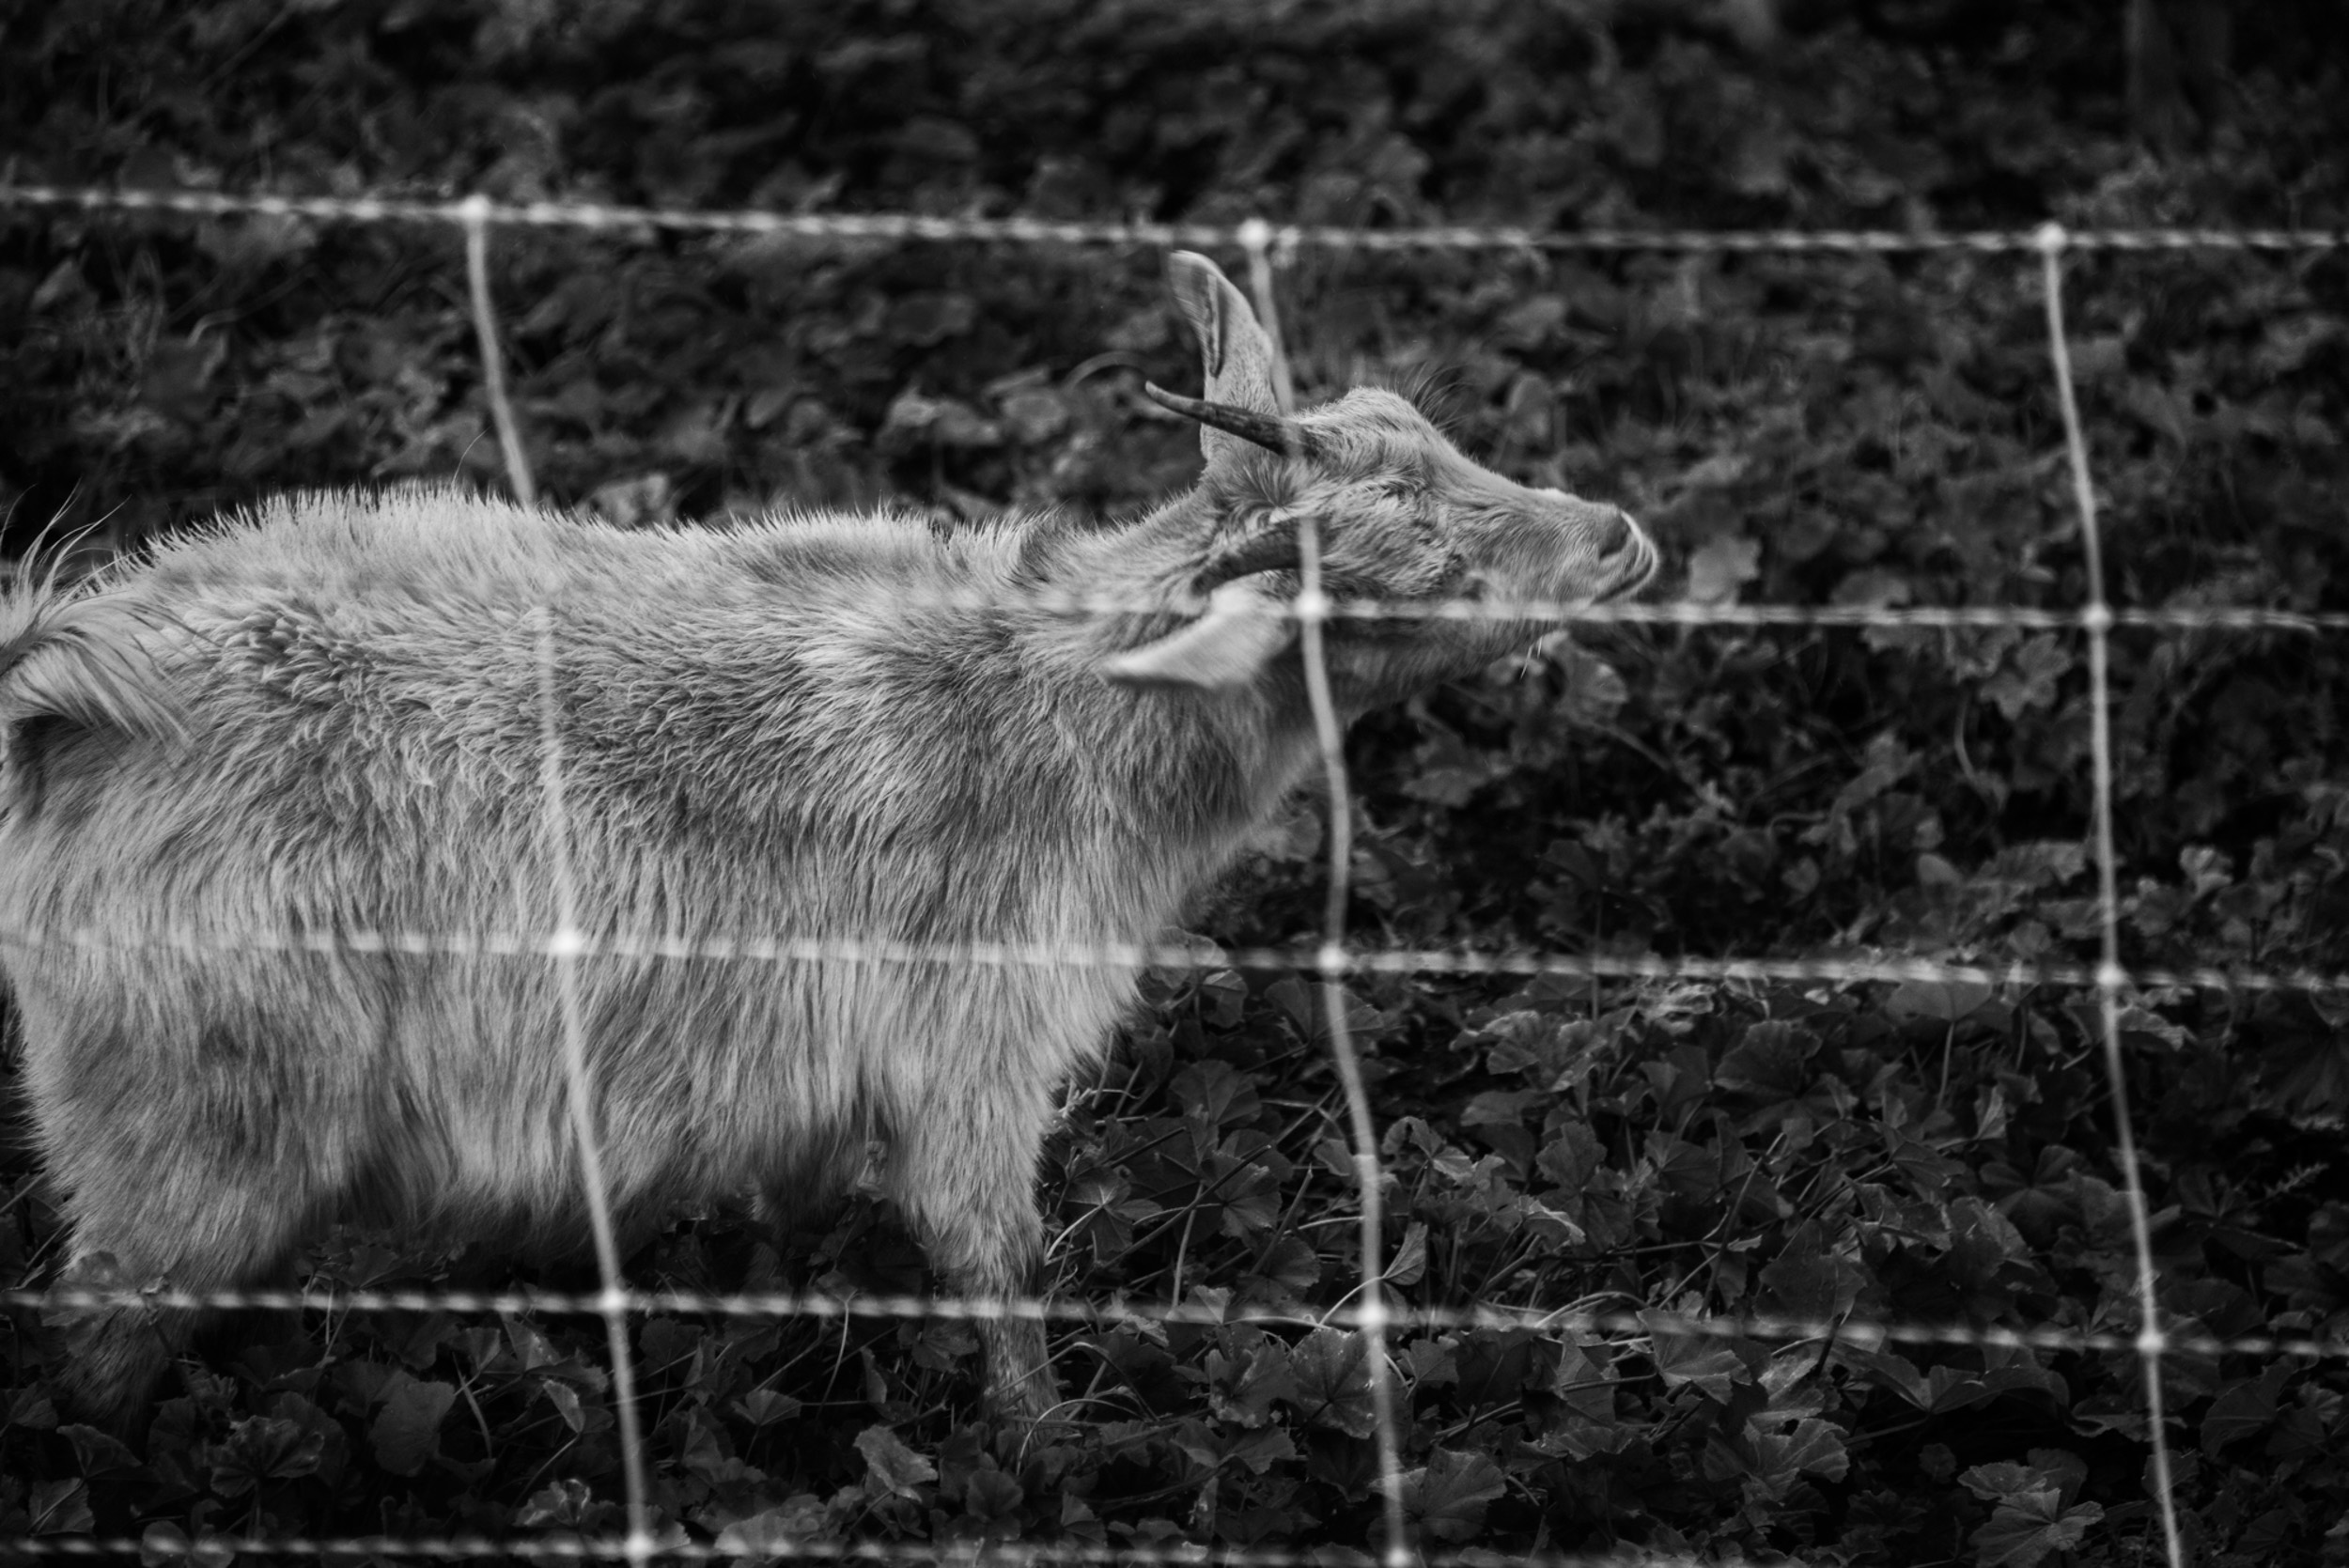 Goat and Fence, Pauma Valley, California  © Robert Welkie 2019